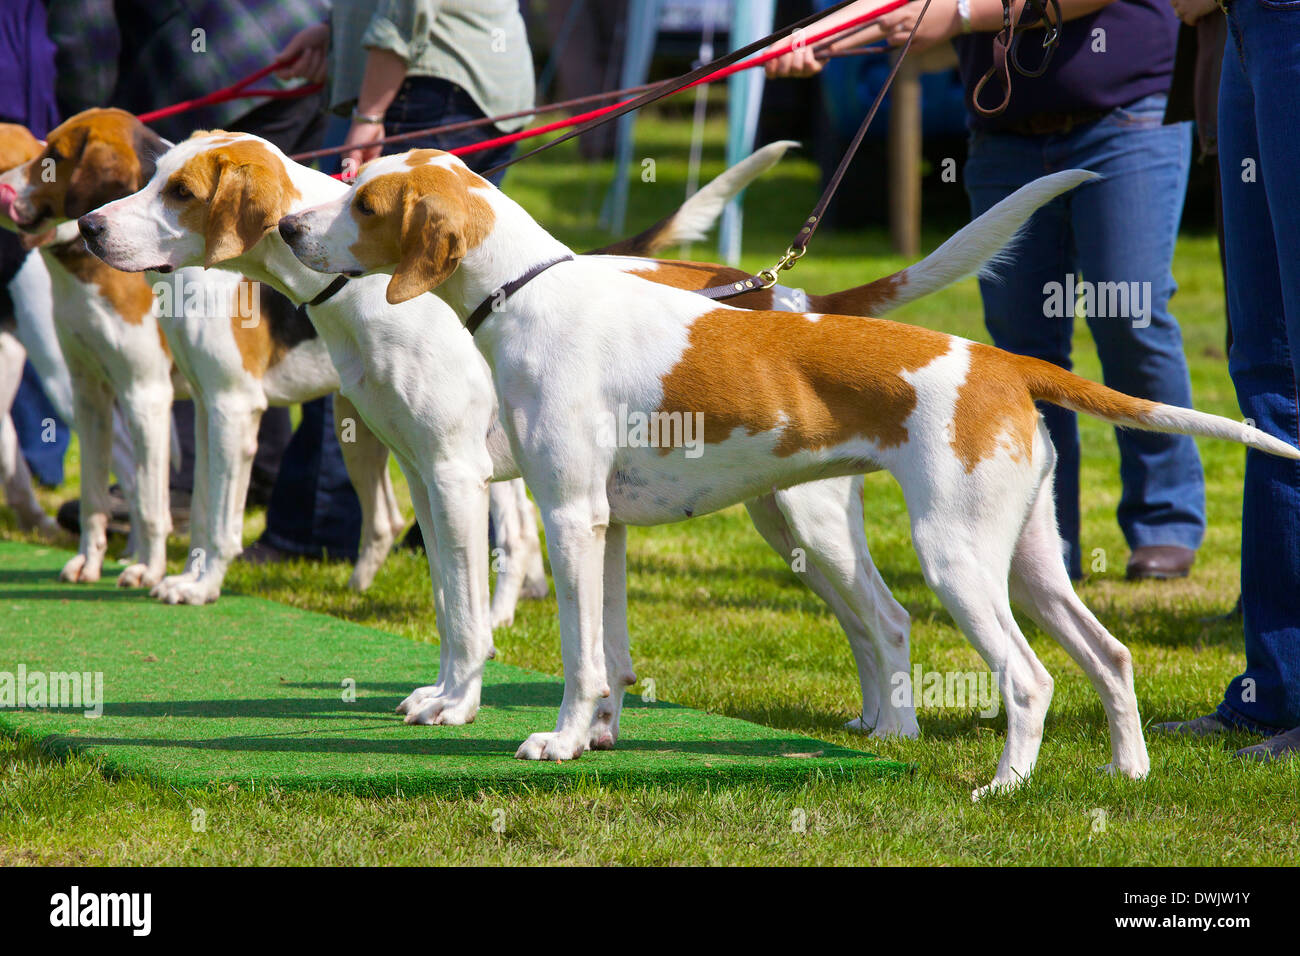 Fox Hounds being shown by theyr owners at Threlkeld Show, Threlkeld, Keswick, Lake District, Cumbria, England, UK - Stock Image